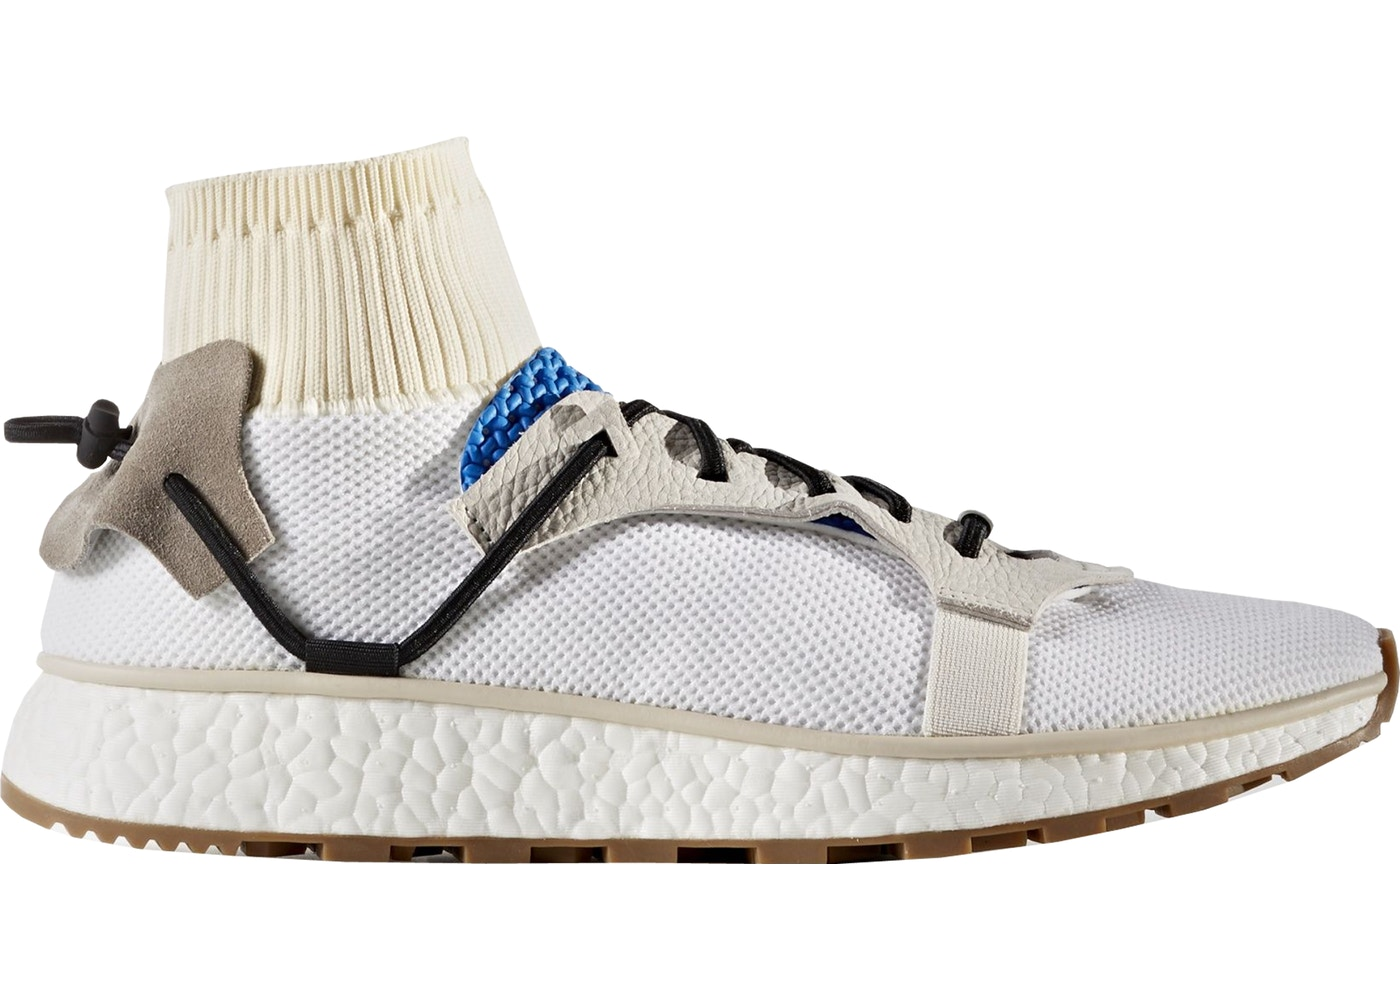 アディダス ADIDAS ラン スニーカー 【 AW RUN ALEXANDER WANG WHITE RUNNING FOOTWEAR WHITEBLUEBIRD 】 メンズ